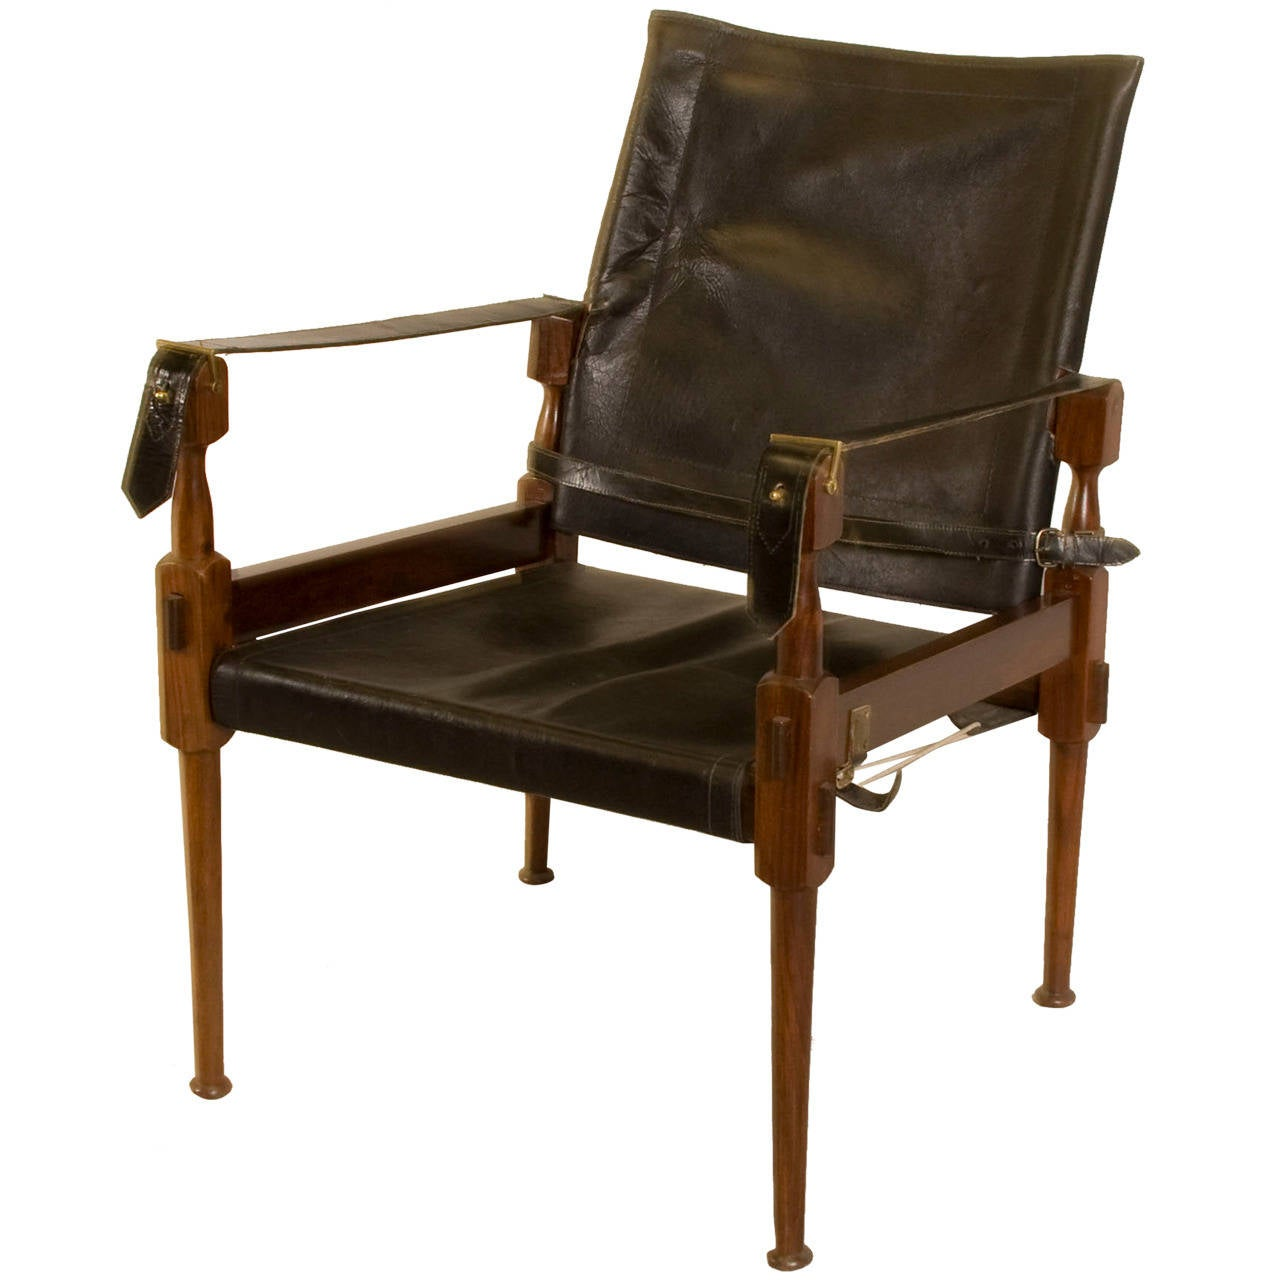 Safari Chair Rosewood Safari Chair In The Style Of Carl Auböck At 1stdibs